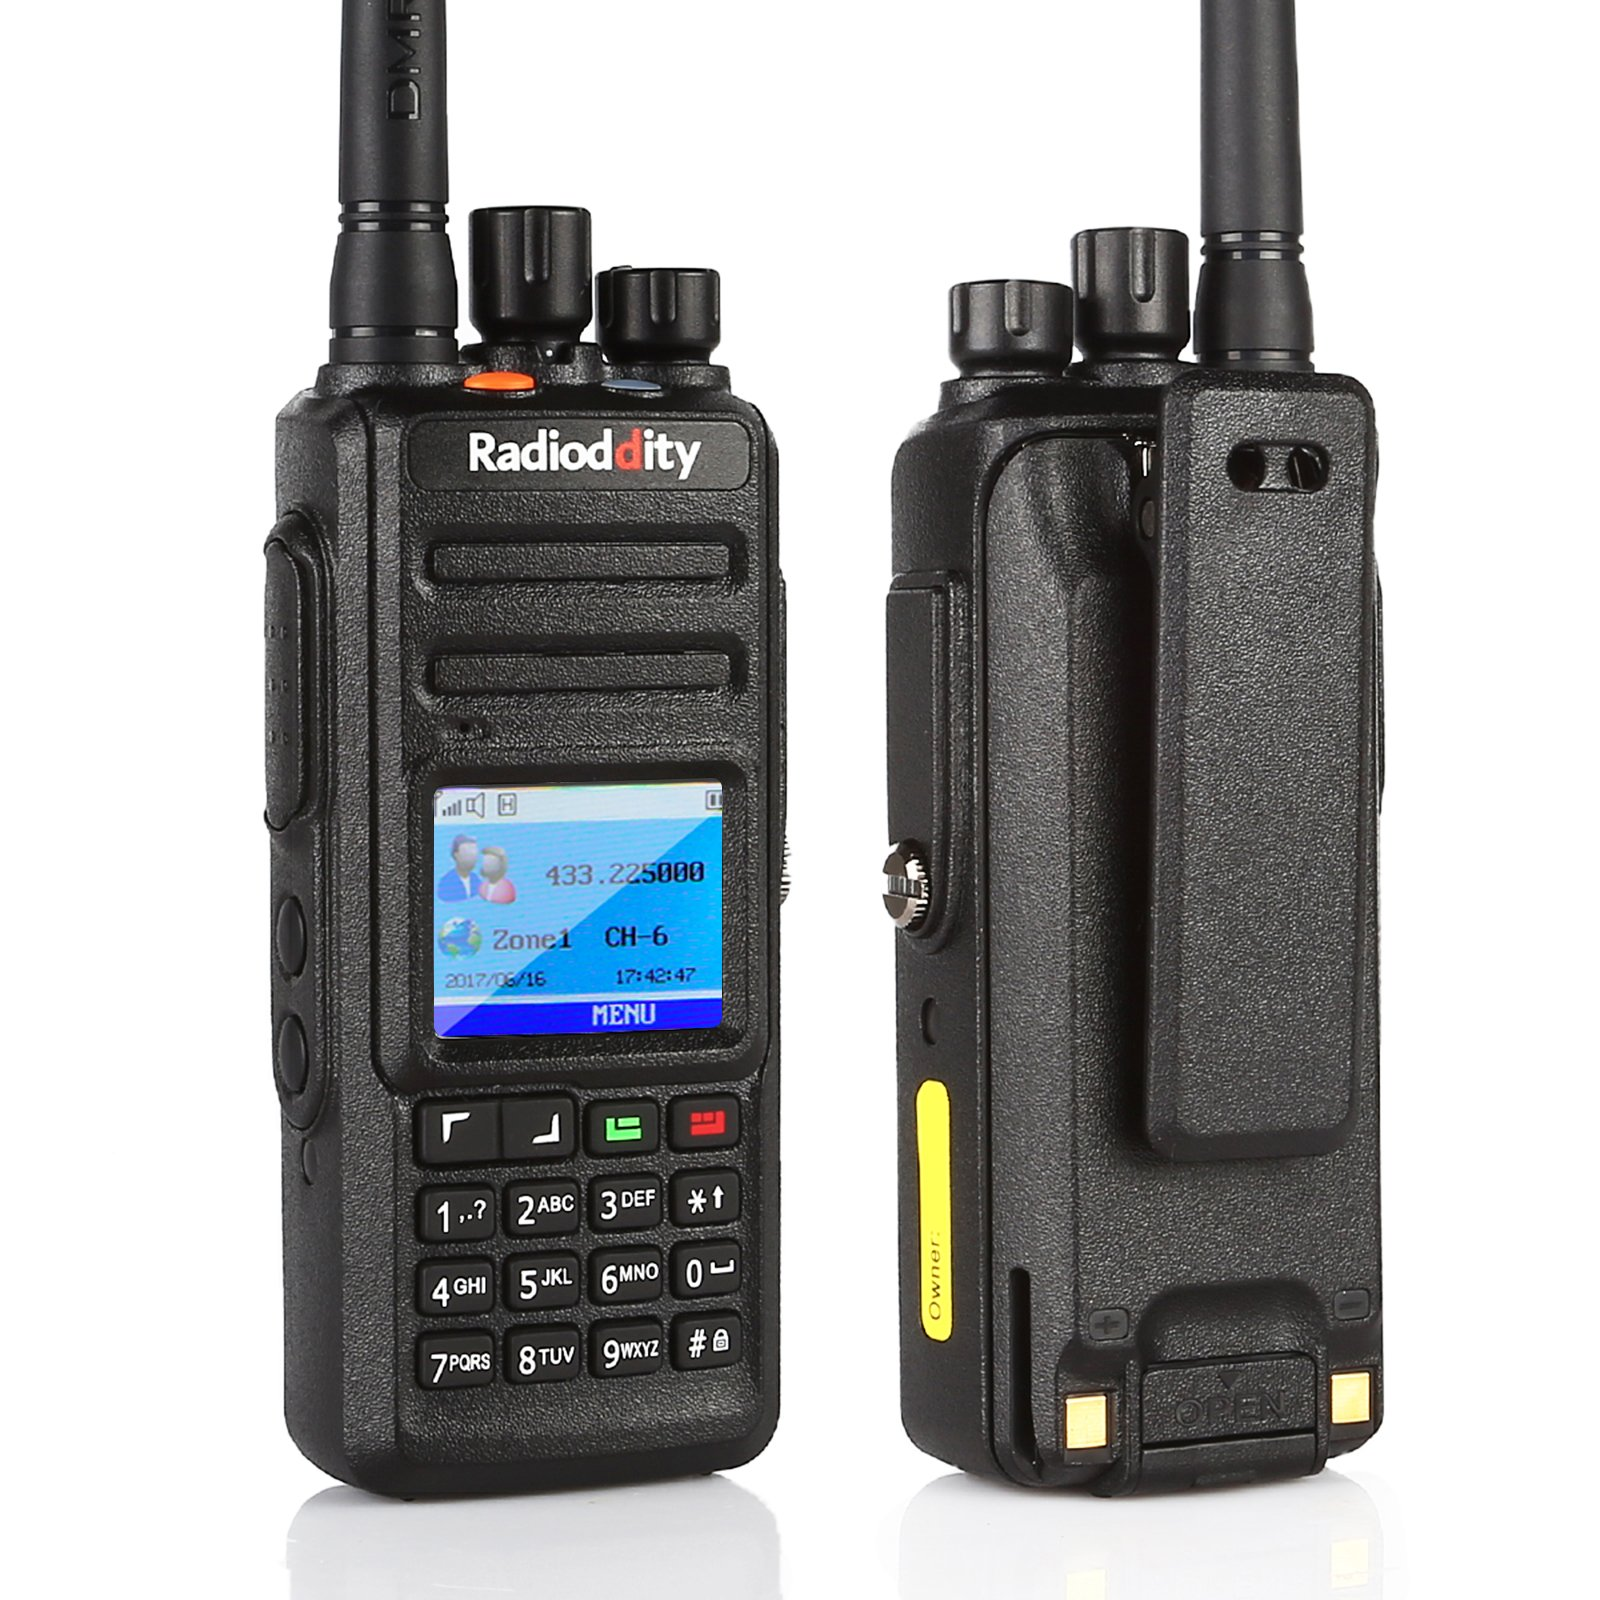 Radioddity GD-55 Plus 10W IP67 Waterproof UHF 400-470MHz 256CH 2800mAh DMR Digital Two Way Radio Ham Radio Compatible with Mototrbo Dual Time Slot, with Free Programming Cable and 2 Antennas by Radioddity (Image #6)